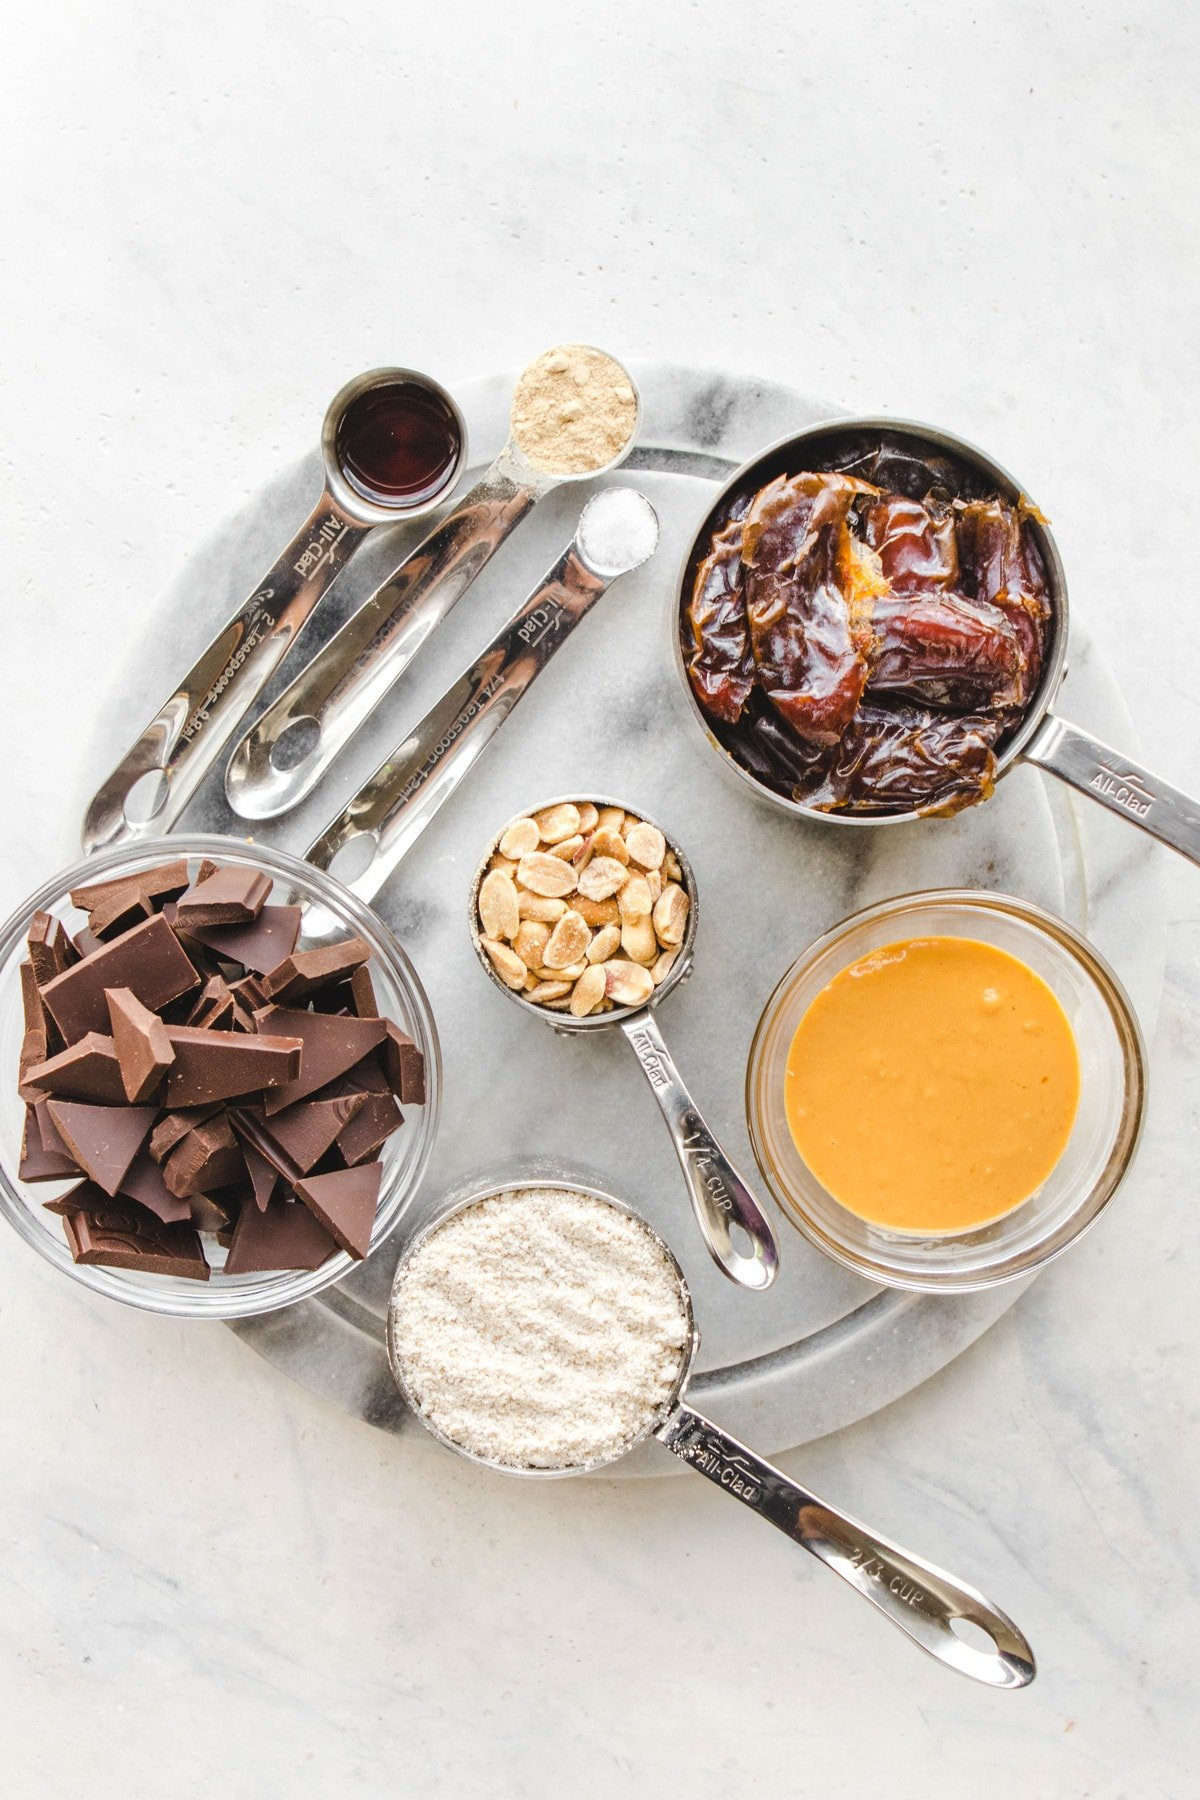 Ingredients for snickers bars on marble cutting board